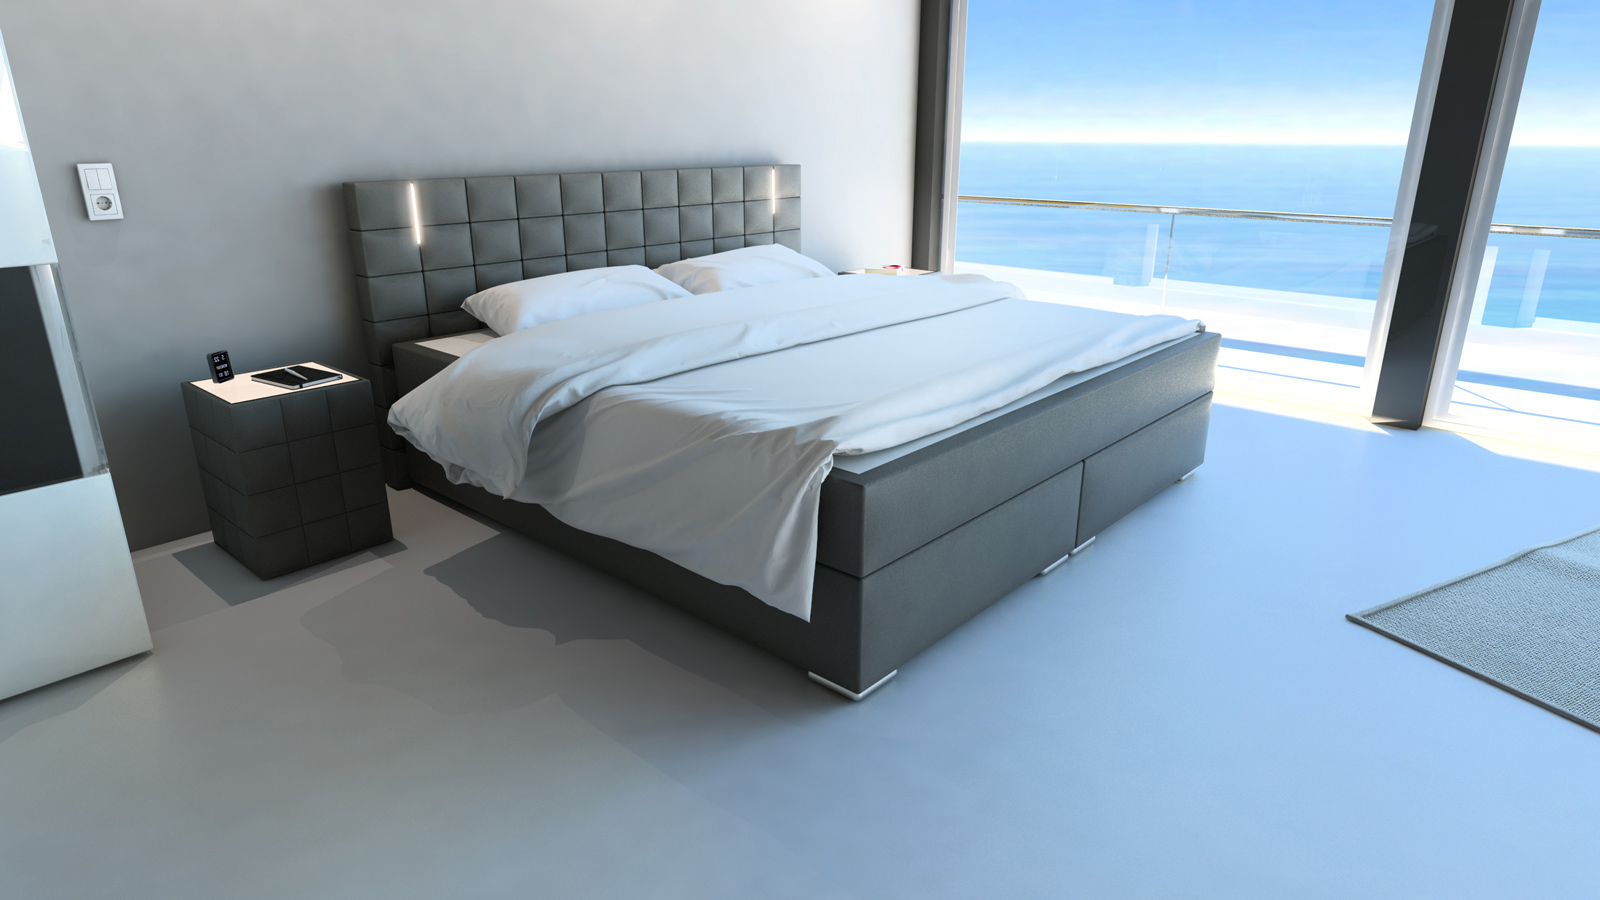 sam boxspringbett hotelbett led beleuchtung 200x200 cm grau boston. Black Bedroom Furniture Sets. Home Design Ideas